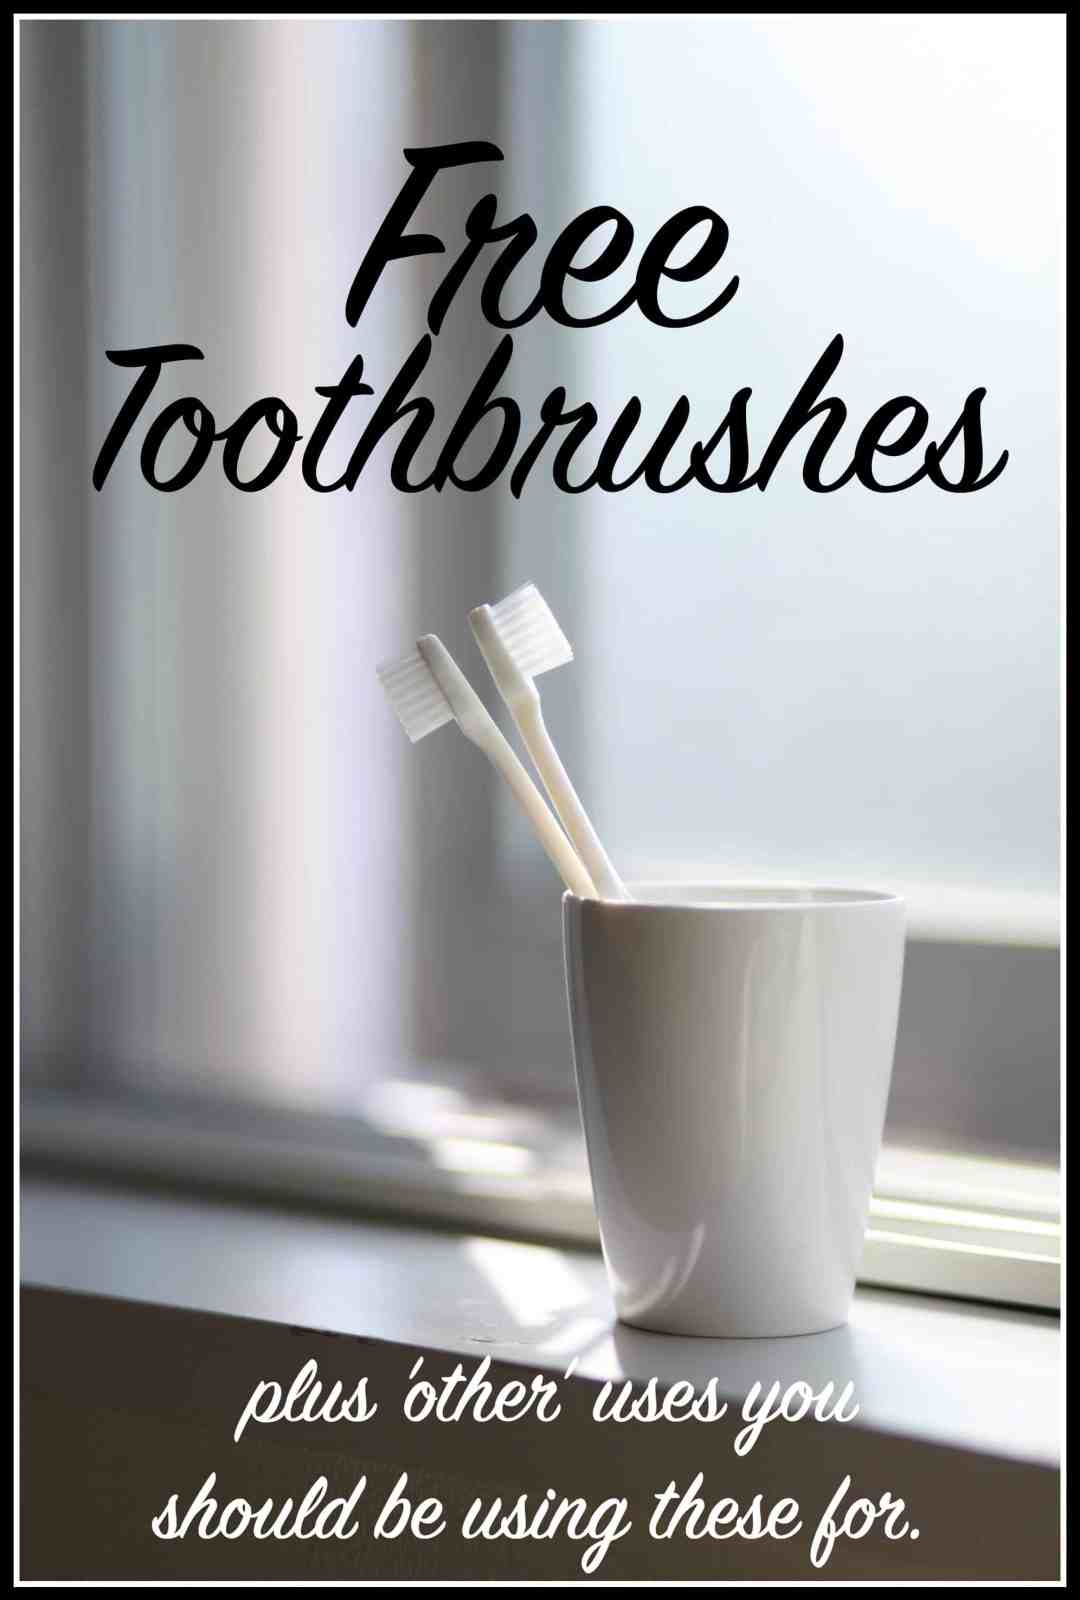 uses for toothbrush